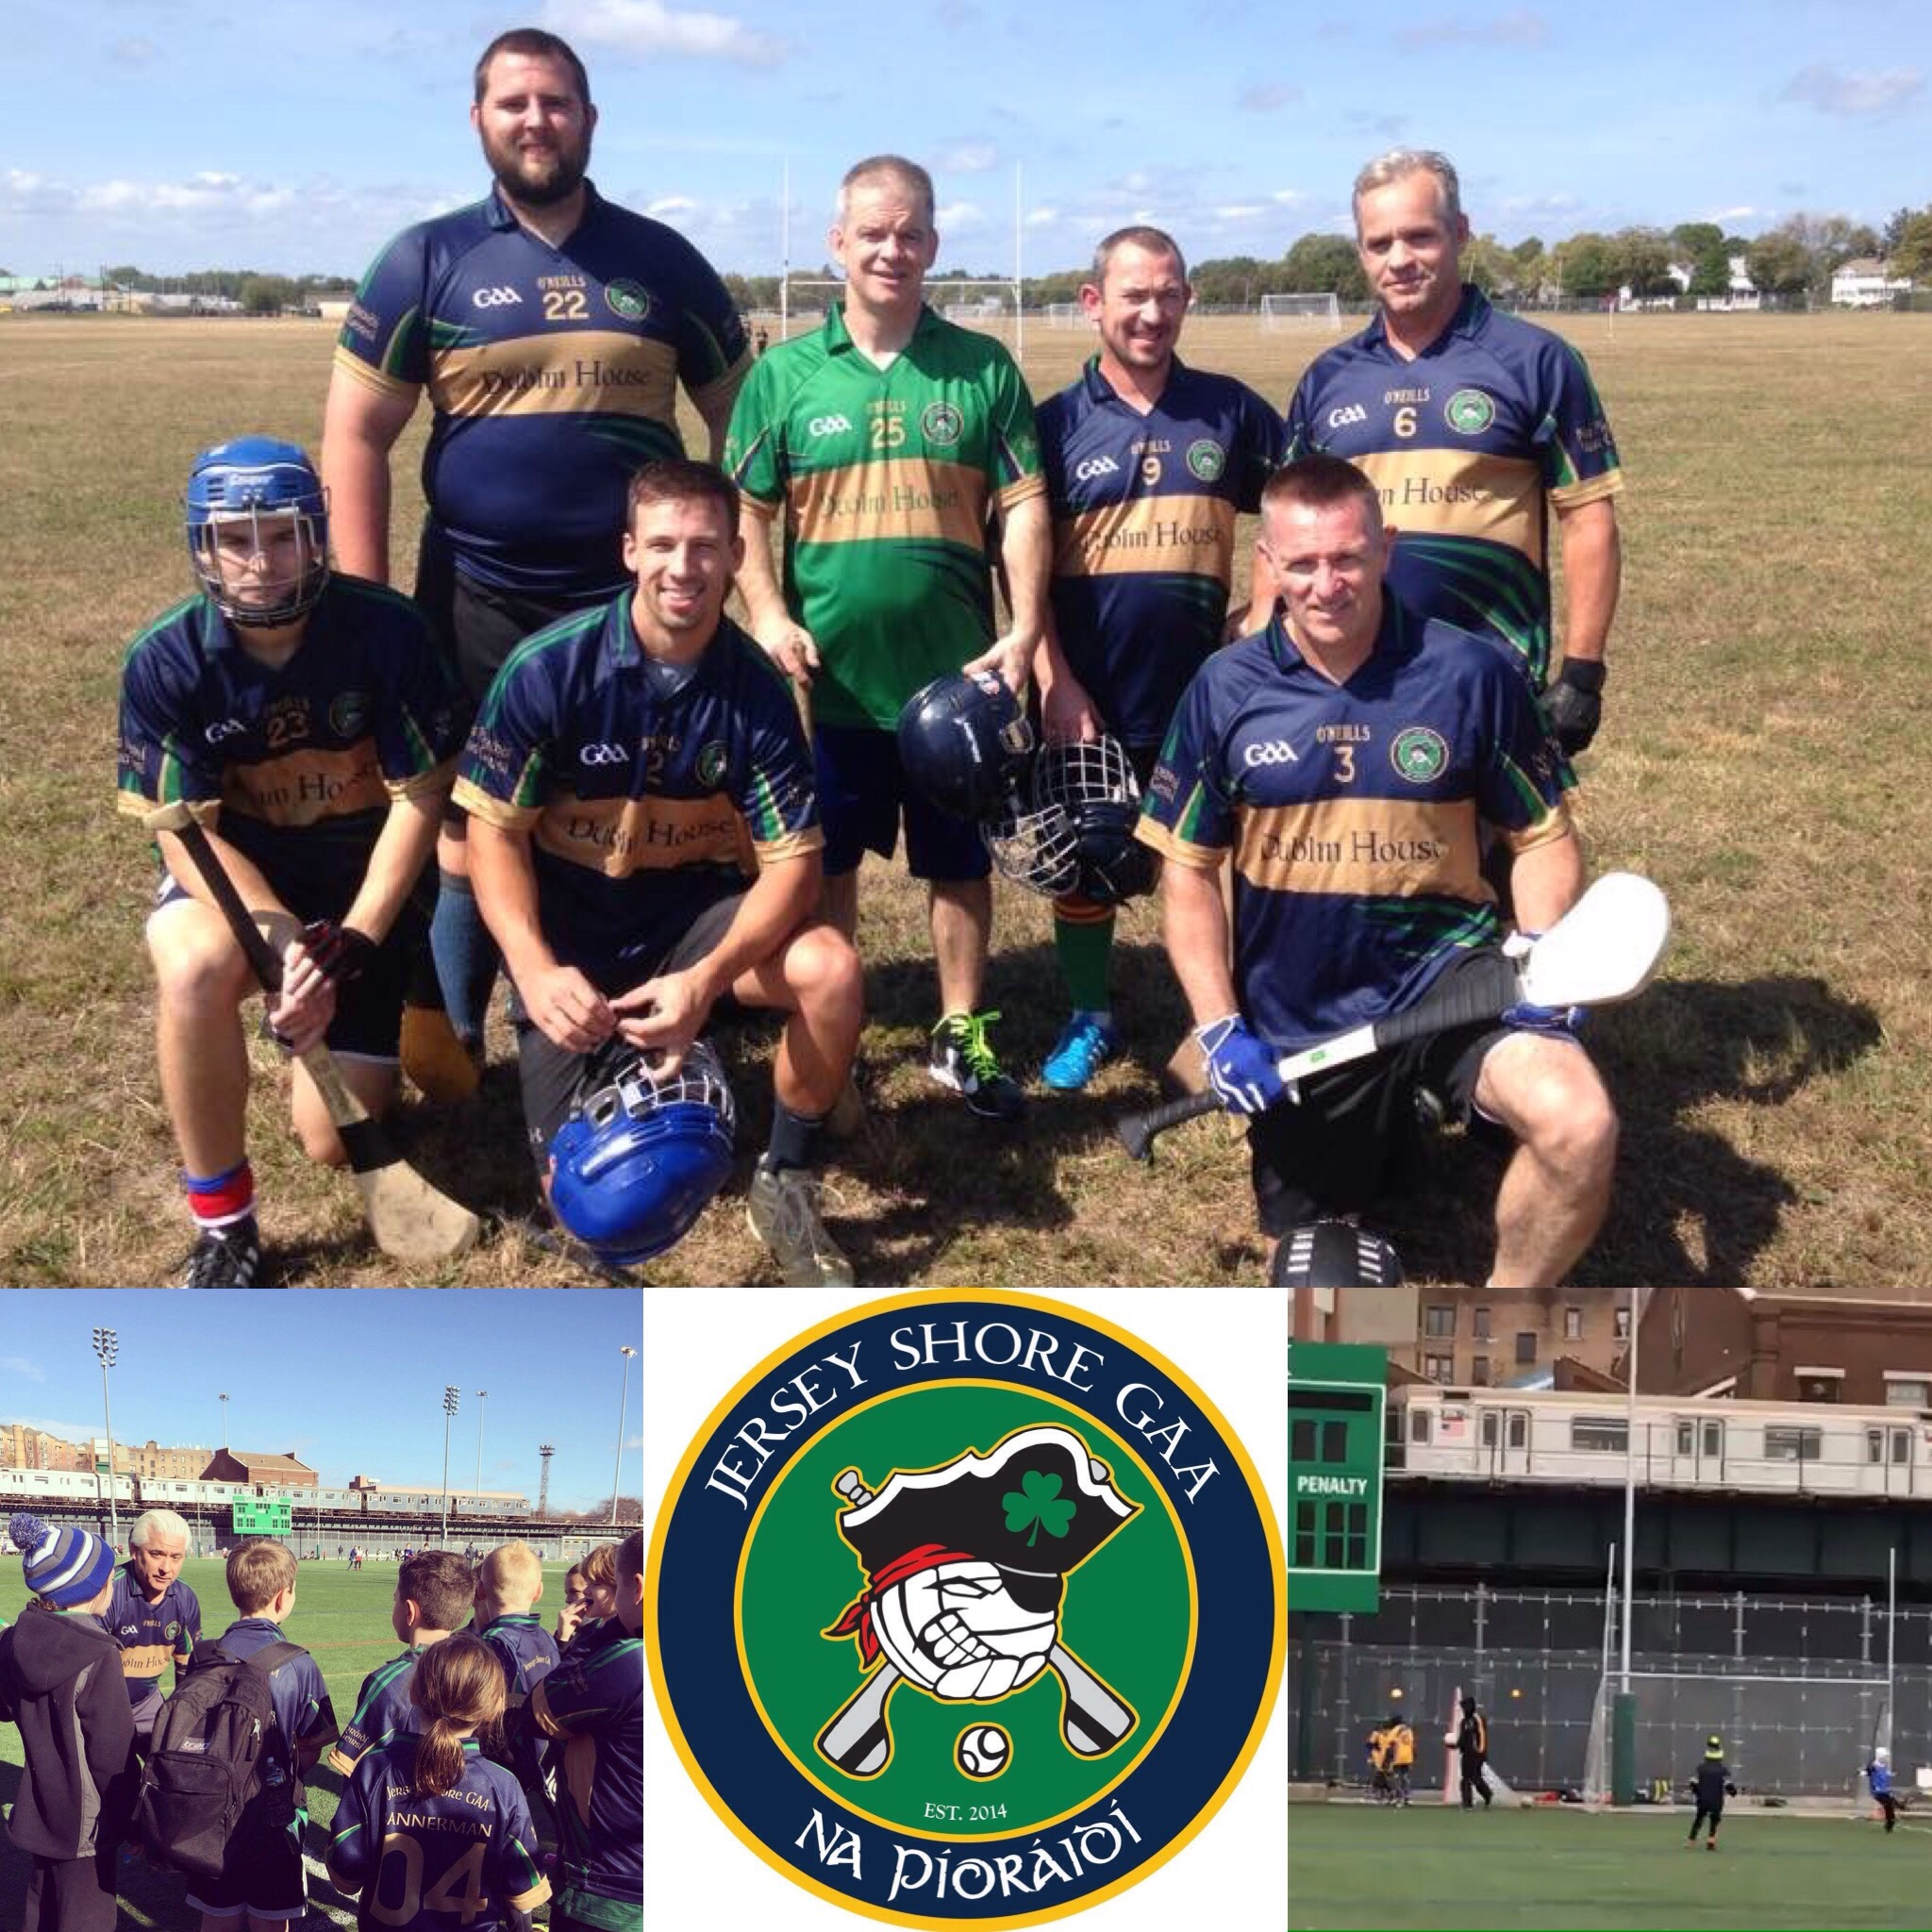 Irish Sports for all at the Shore!